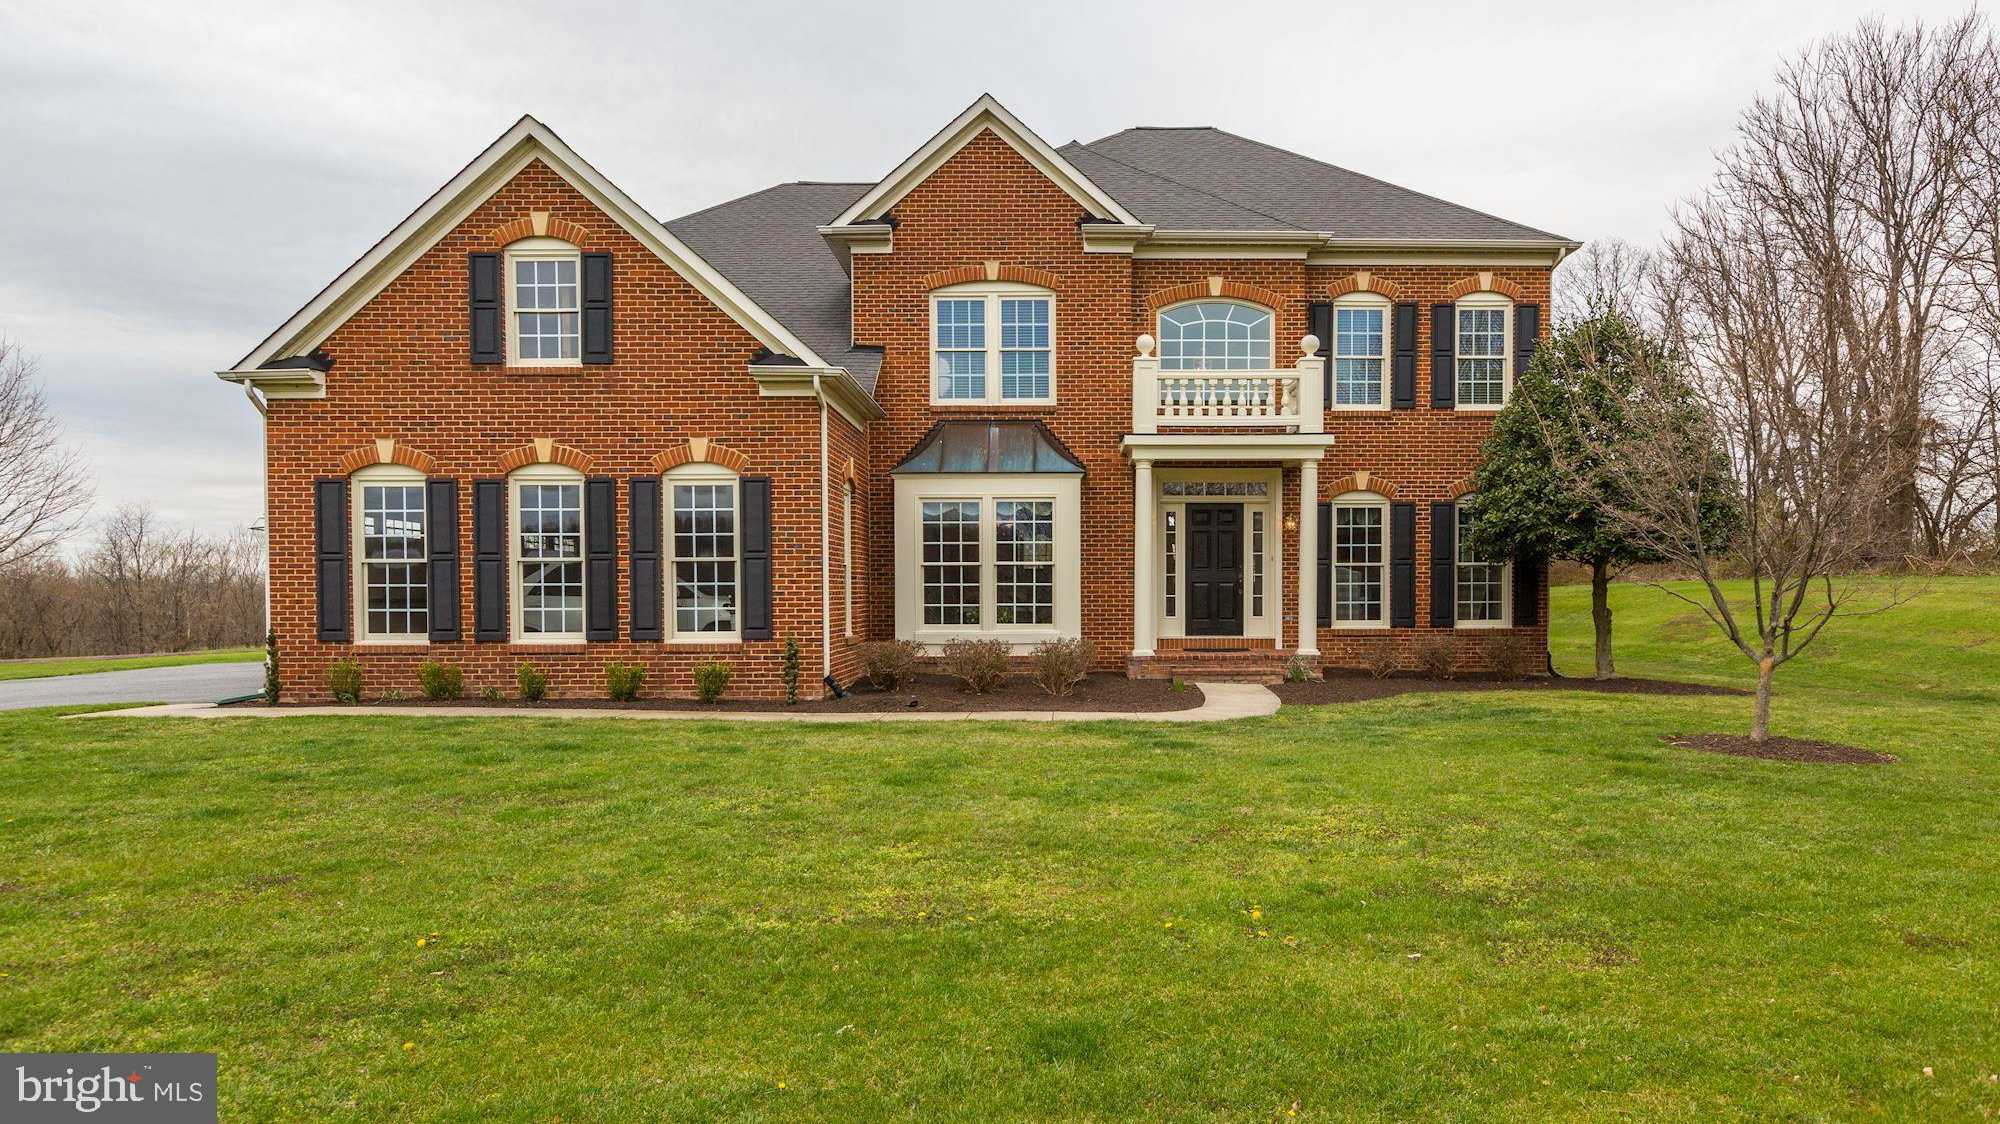 $860,000 - 4Br/5Ba -  for Sale in Sunridge South, Clarksburg